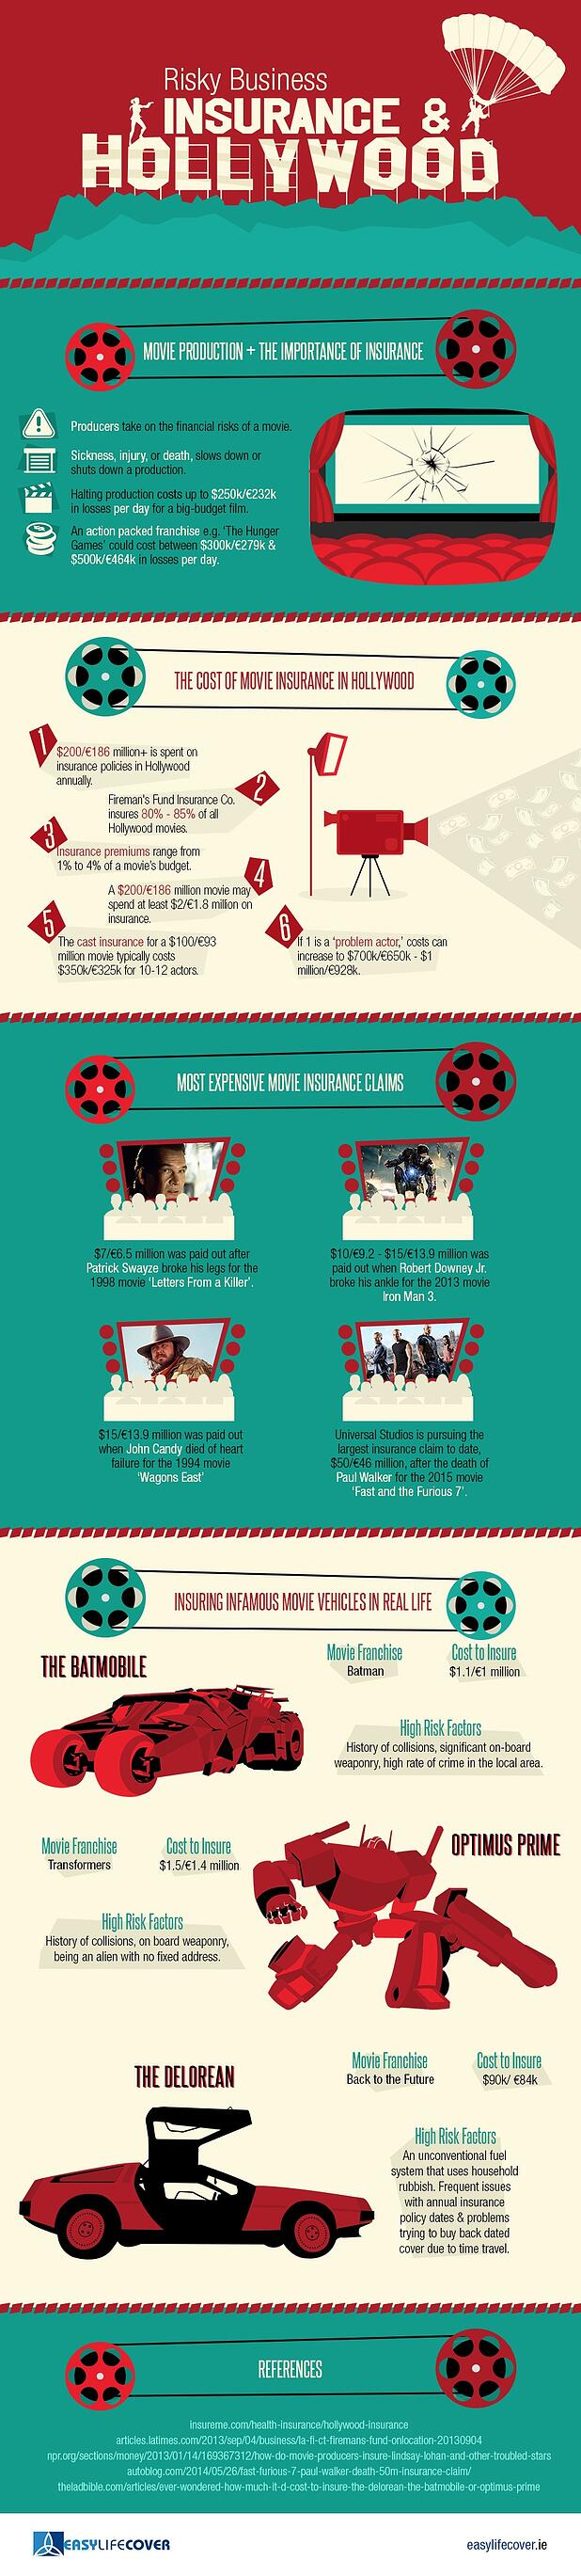 Insurance-and-Hollywood-Infographic.jpg